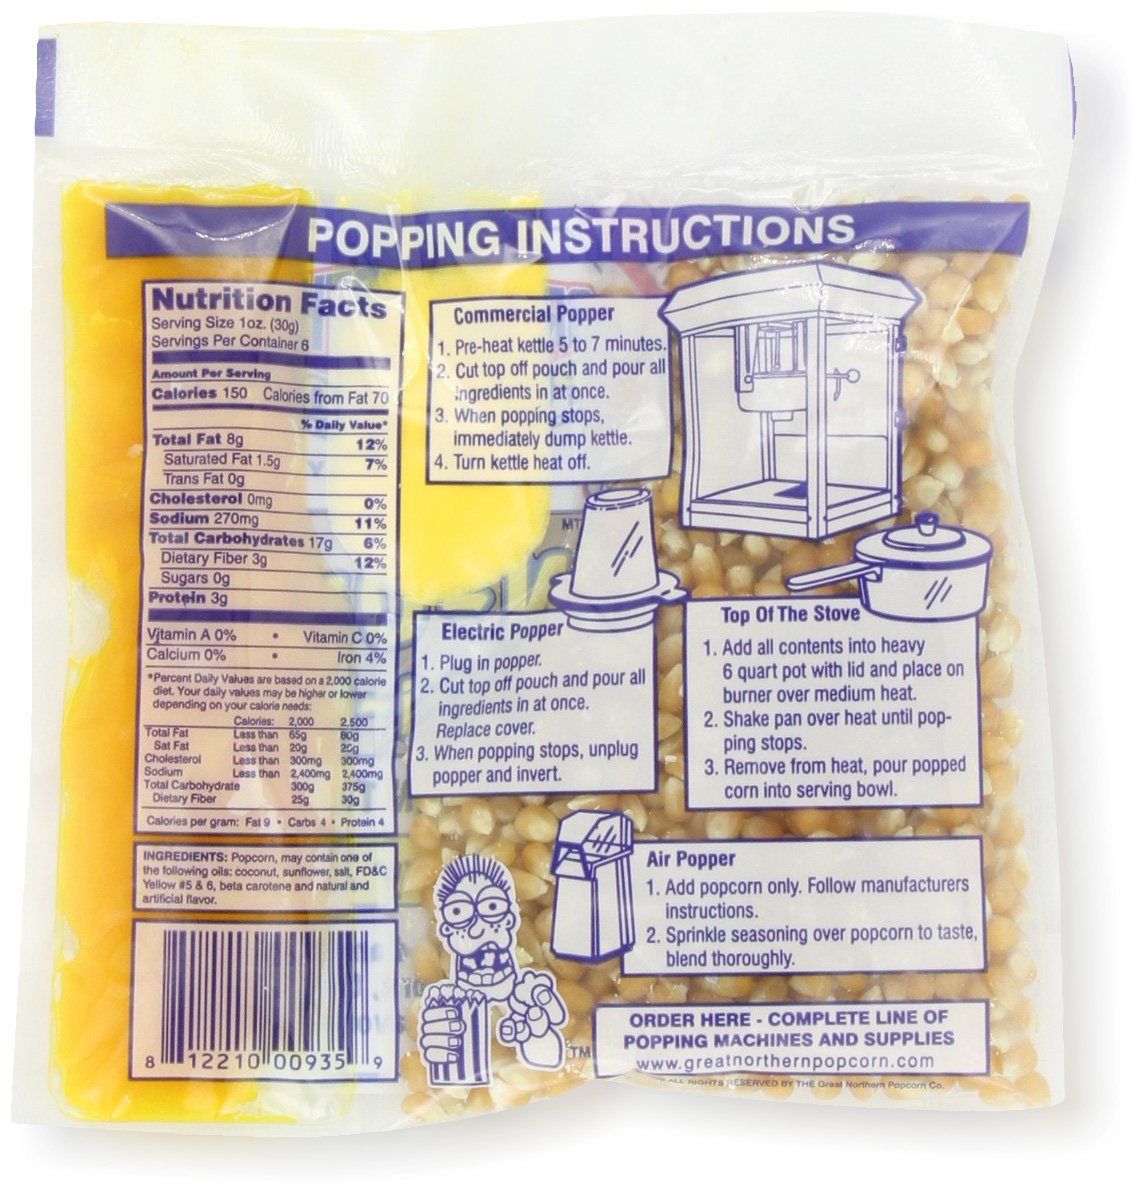 4105 Great Northern Popcorn Premium 6 Ounce Popcorn Portion Packs, CASE OF 24 by Great Northern Popcorn Company (Image #3)